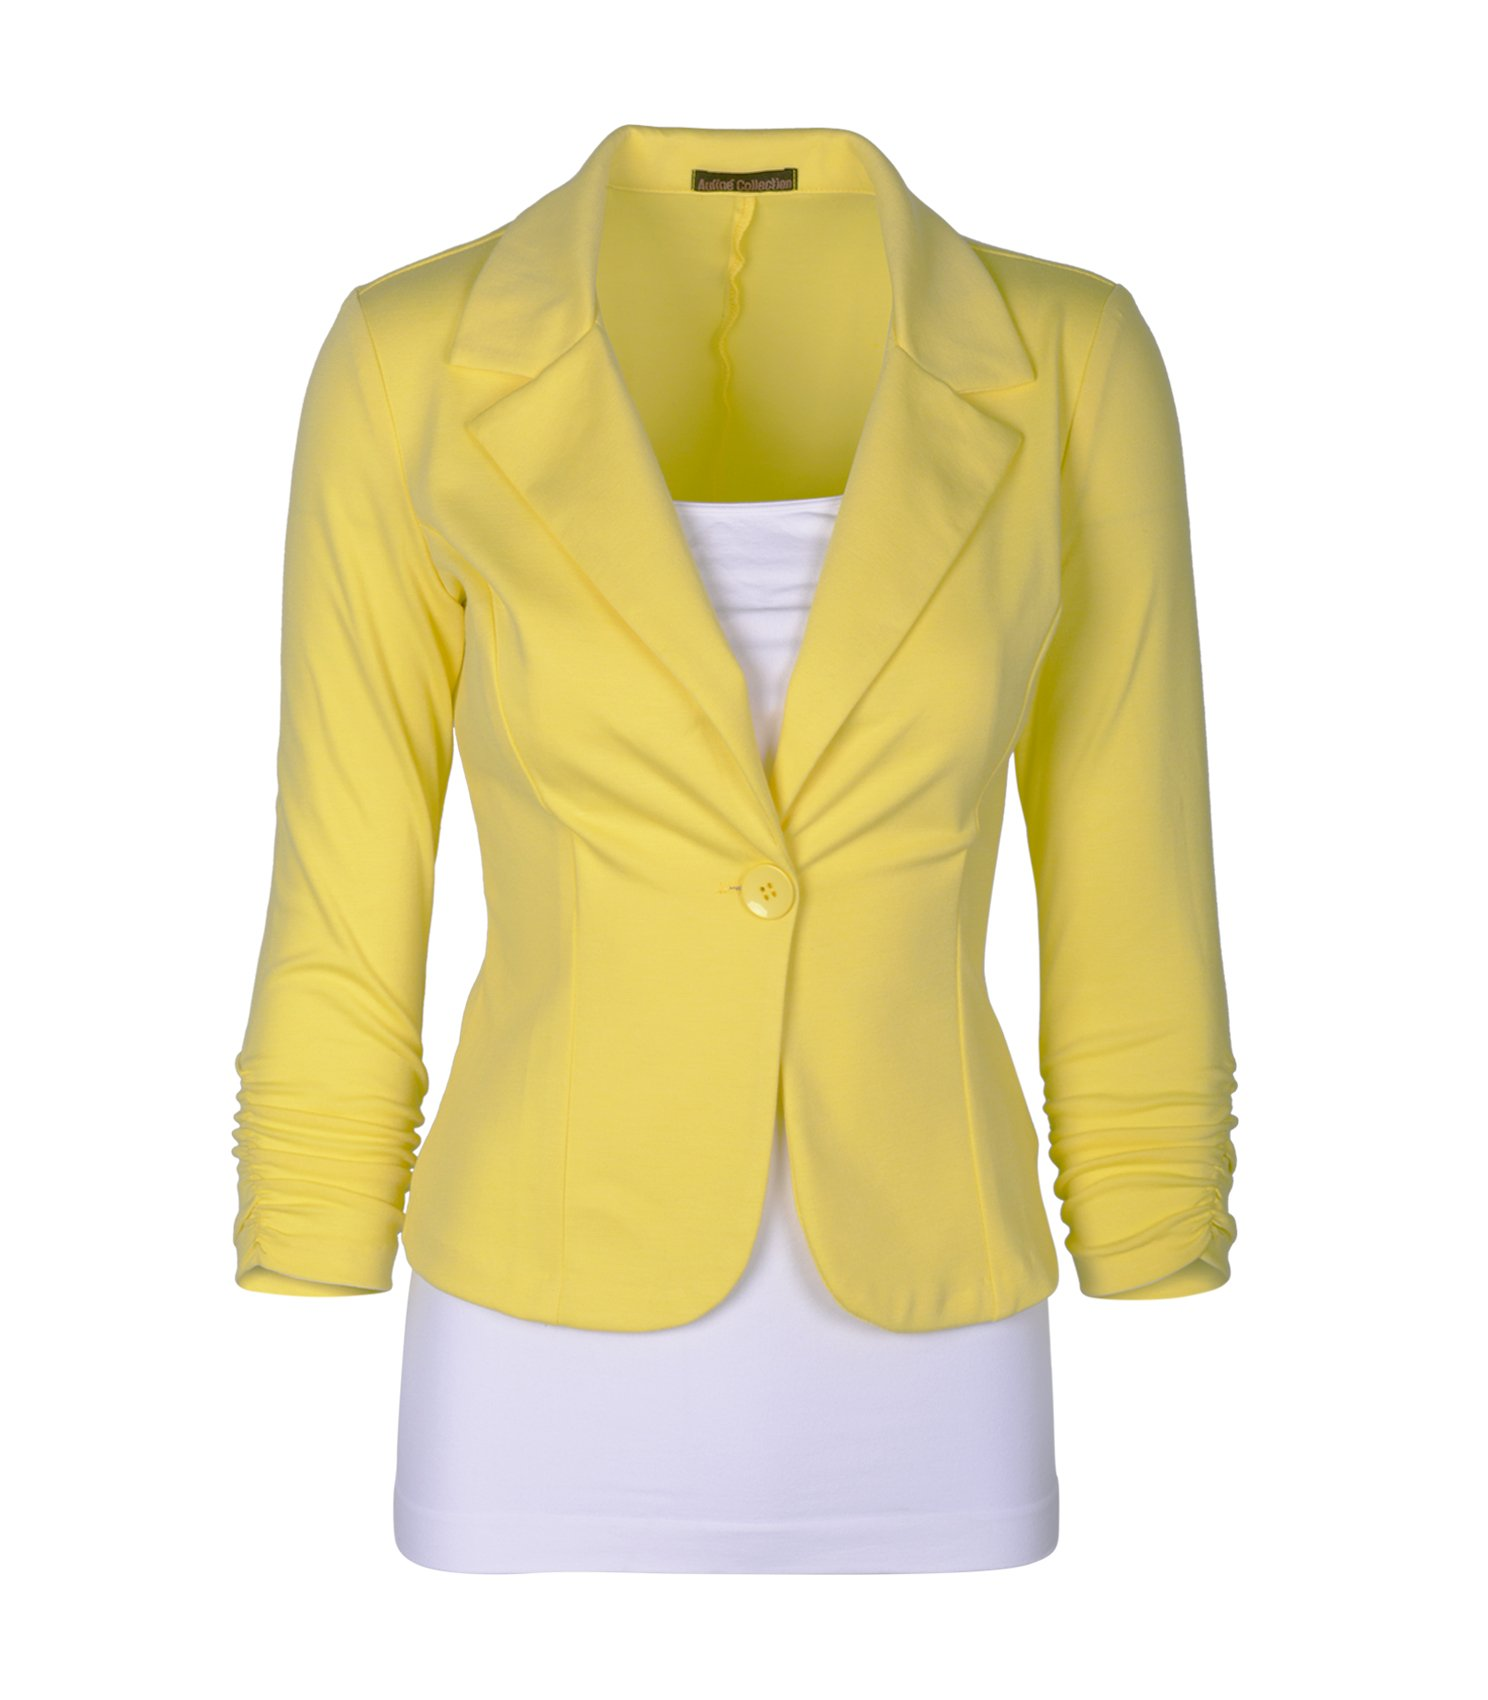 Auliné Collection Women's Casual Work Solid Color Knit Blazer Yellow 3X